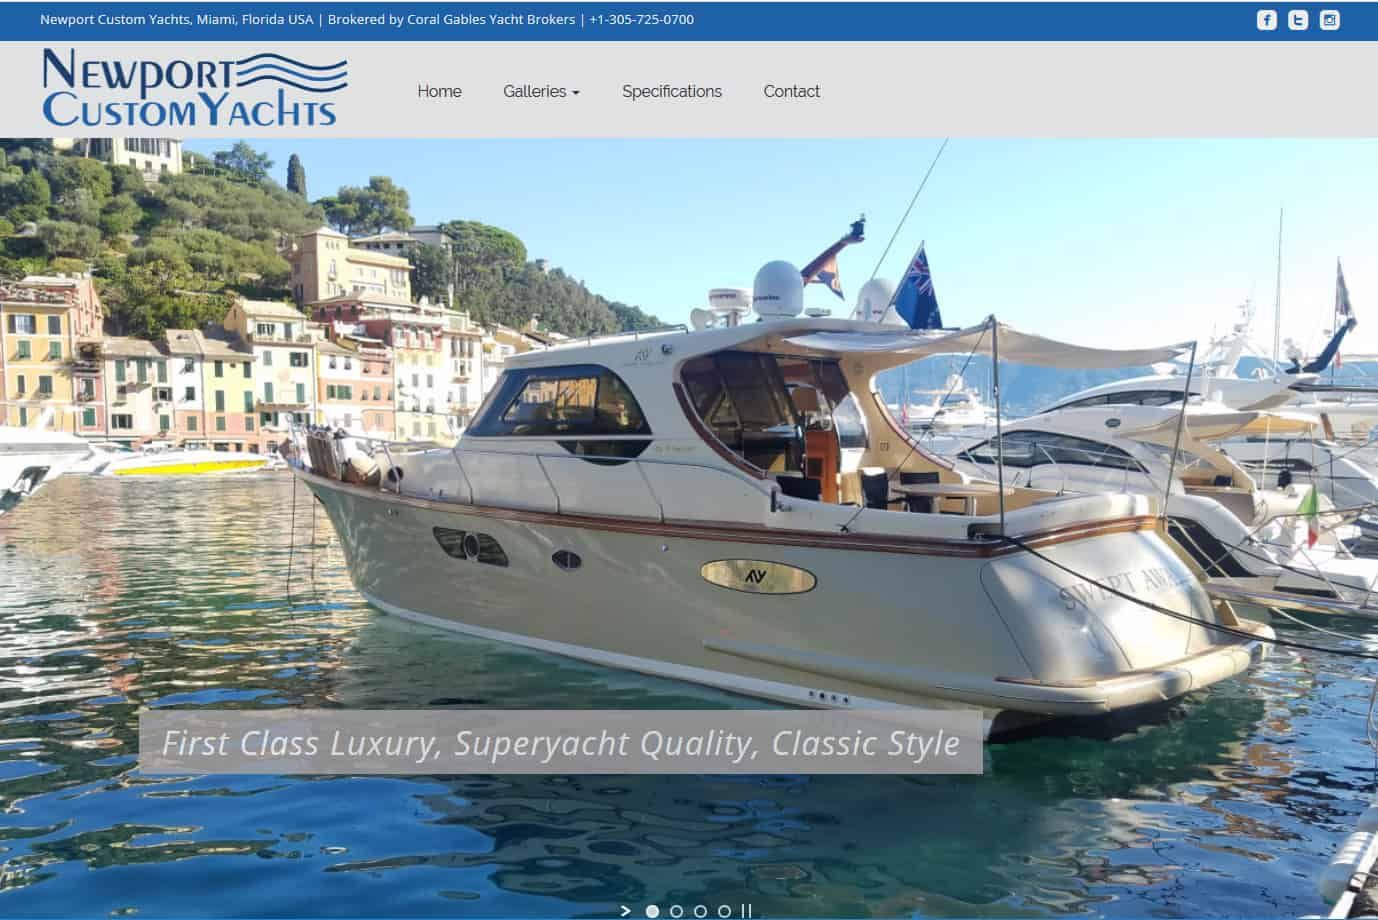 Newport Custom Yachts Website by iSatisfy.com